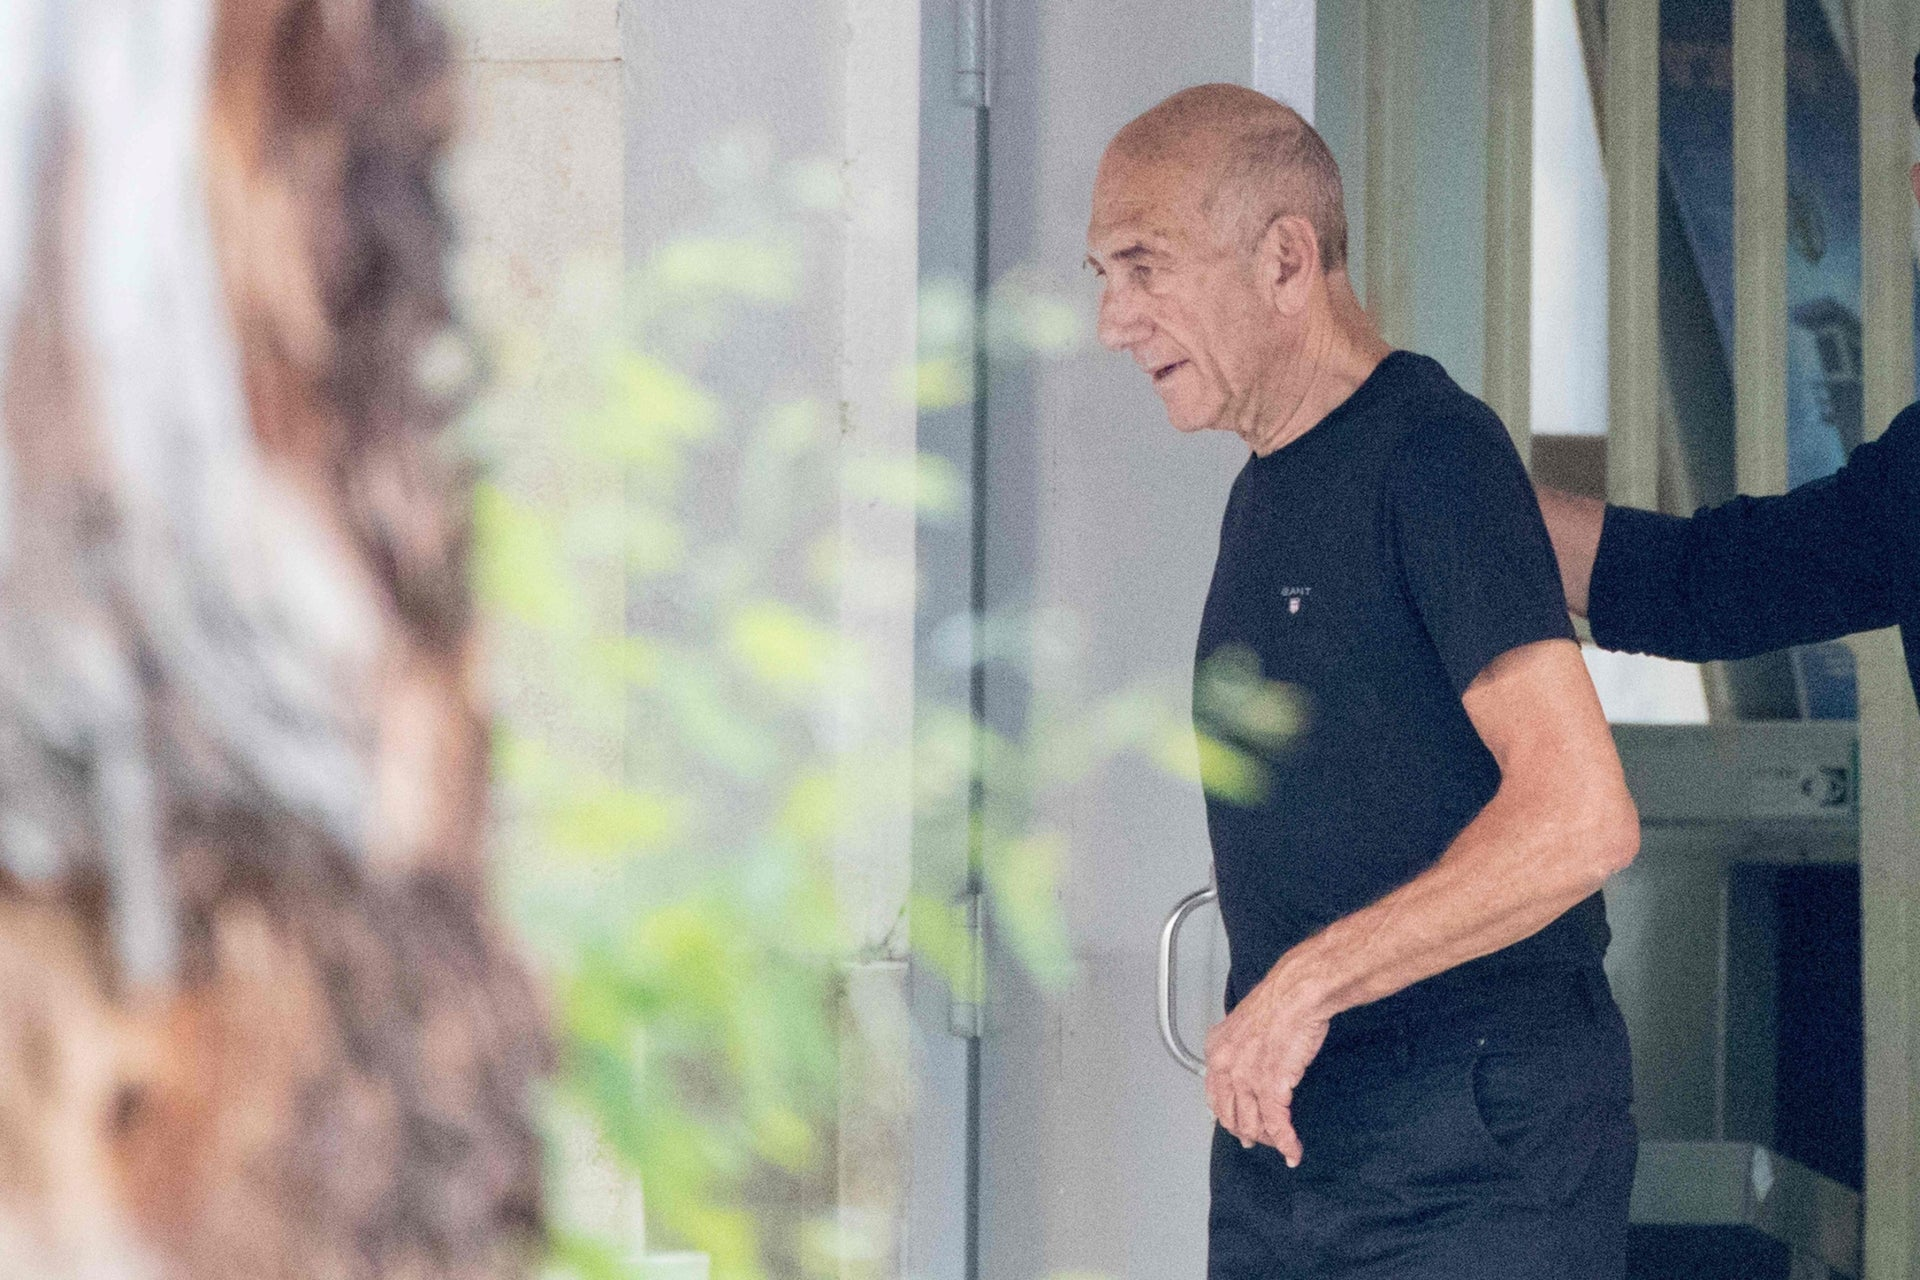 Ehud Olmert leaving Maasyahu Prison, Ramle, after serving 16 months of a 27-month sentence, July 2, 2017.